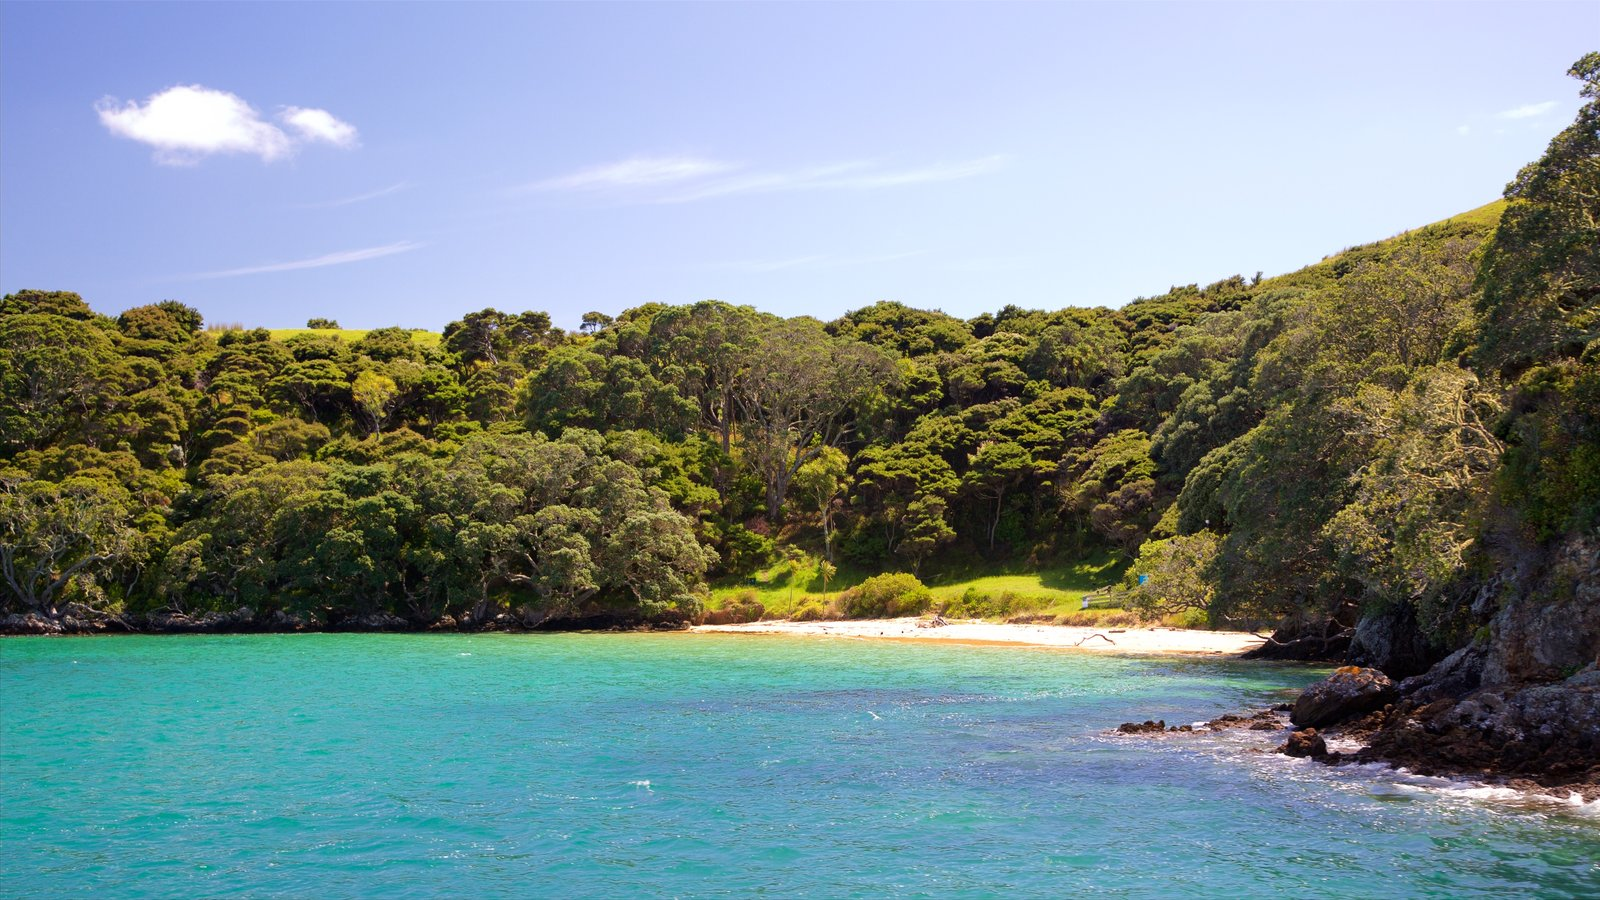 Russell which includes a bay or harbor, a sandy beach and forest scenes